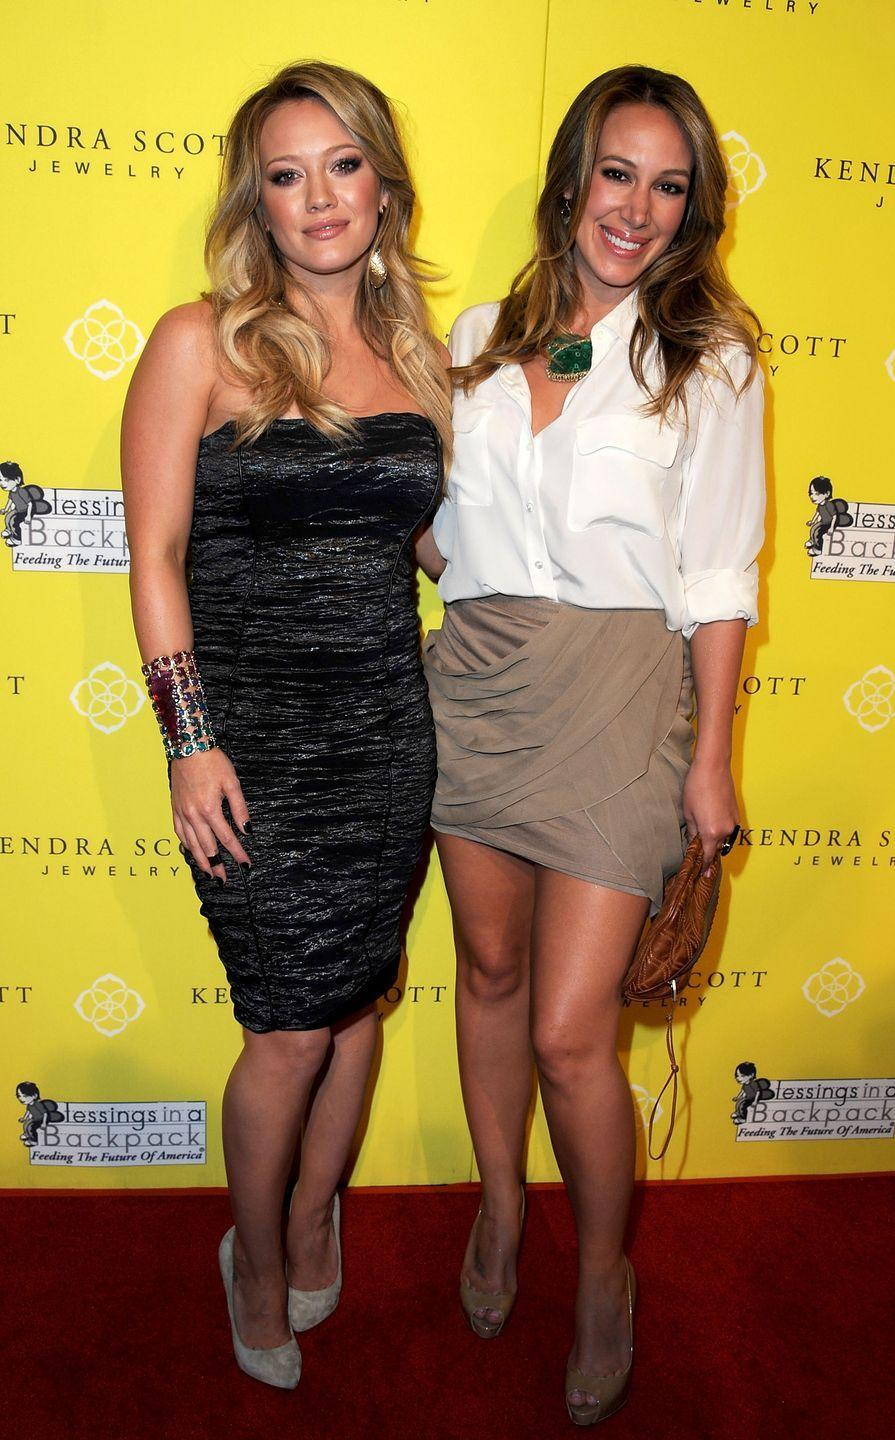 <p> While Haylie Duff is older, Hilary started entertaining first, starring in <em>Casper Meets Wendy </em>as a child. Haylie later joined her and the sisters even co-starred on-screen a few times. While the Duffs aren't identical, their hazel almond-shaped eyes will make you do a double take. </p>